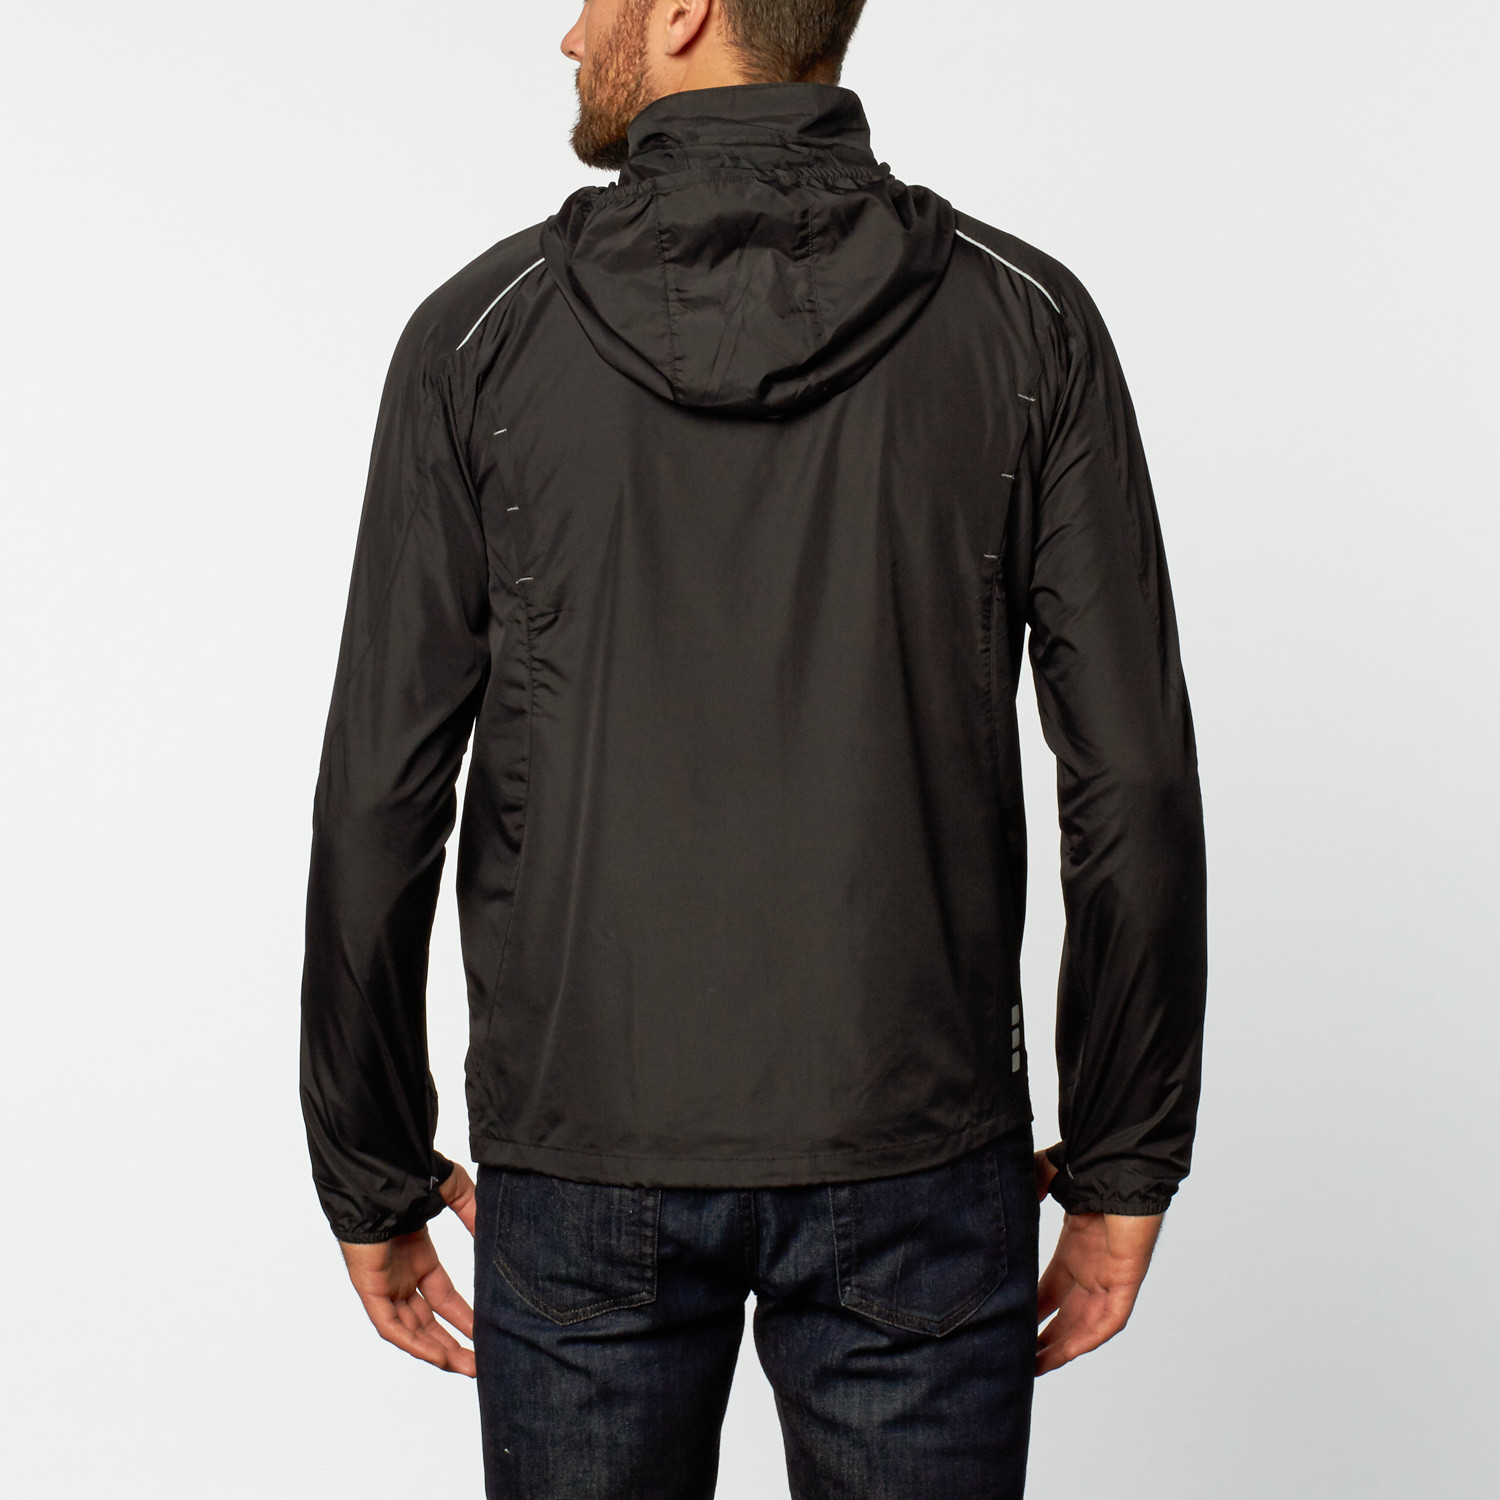 rain jacket black s mercedes benz clothing touch